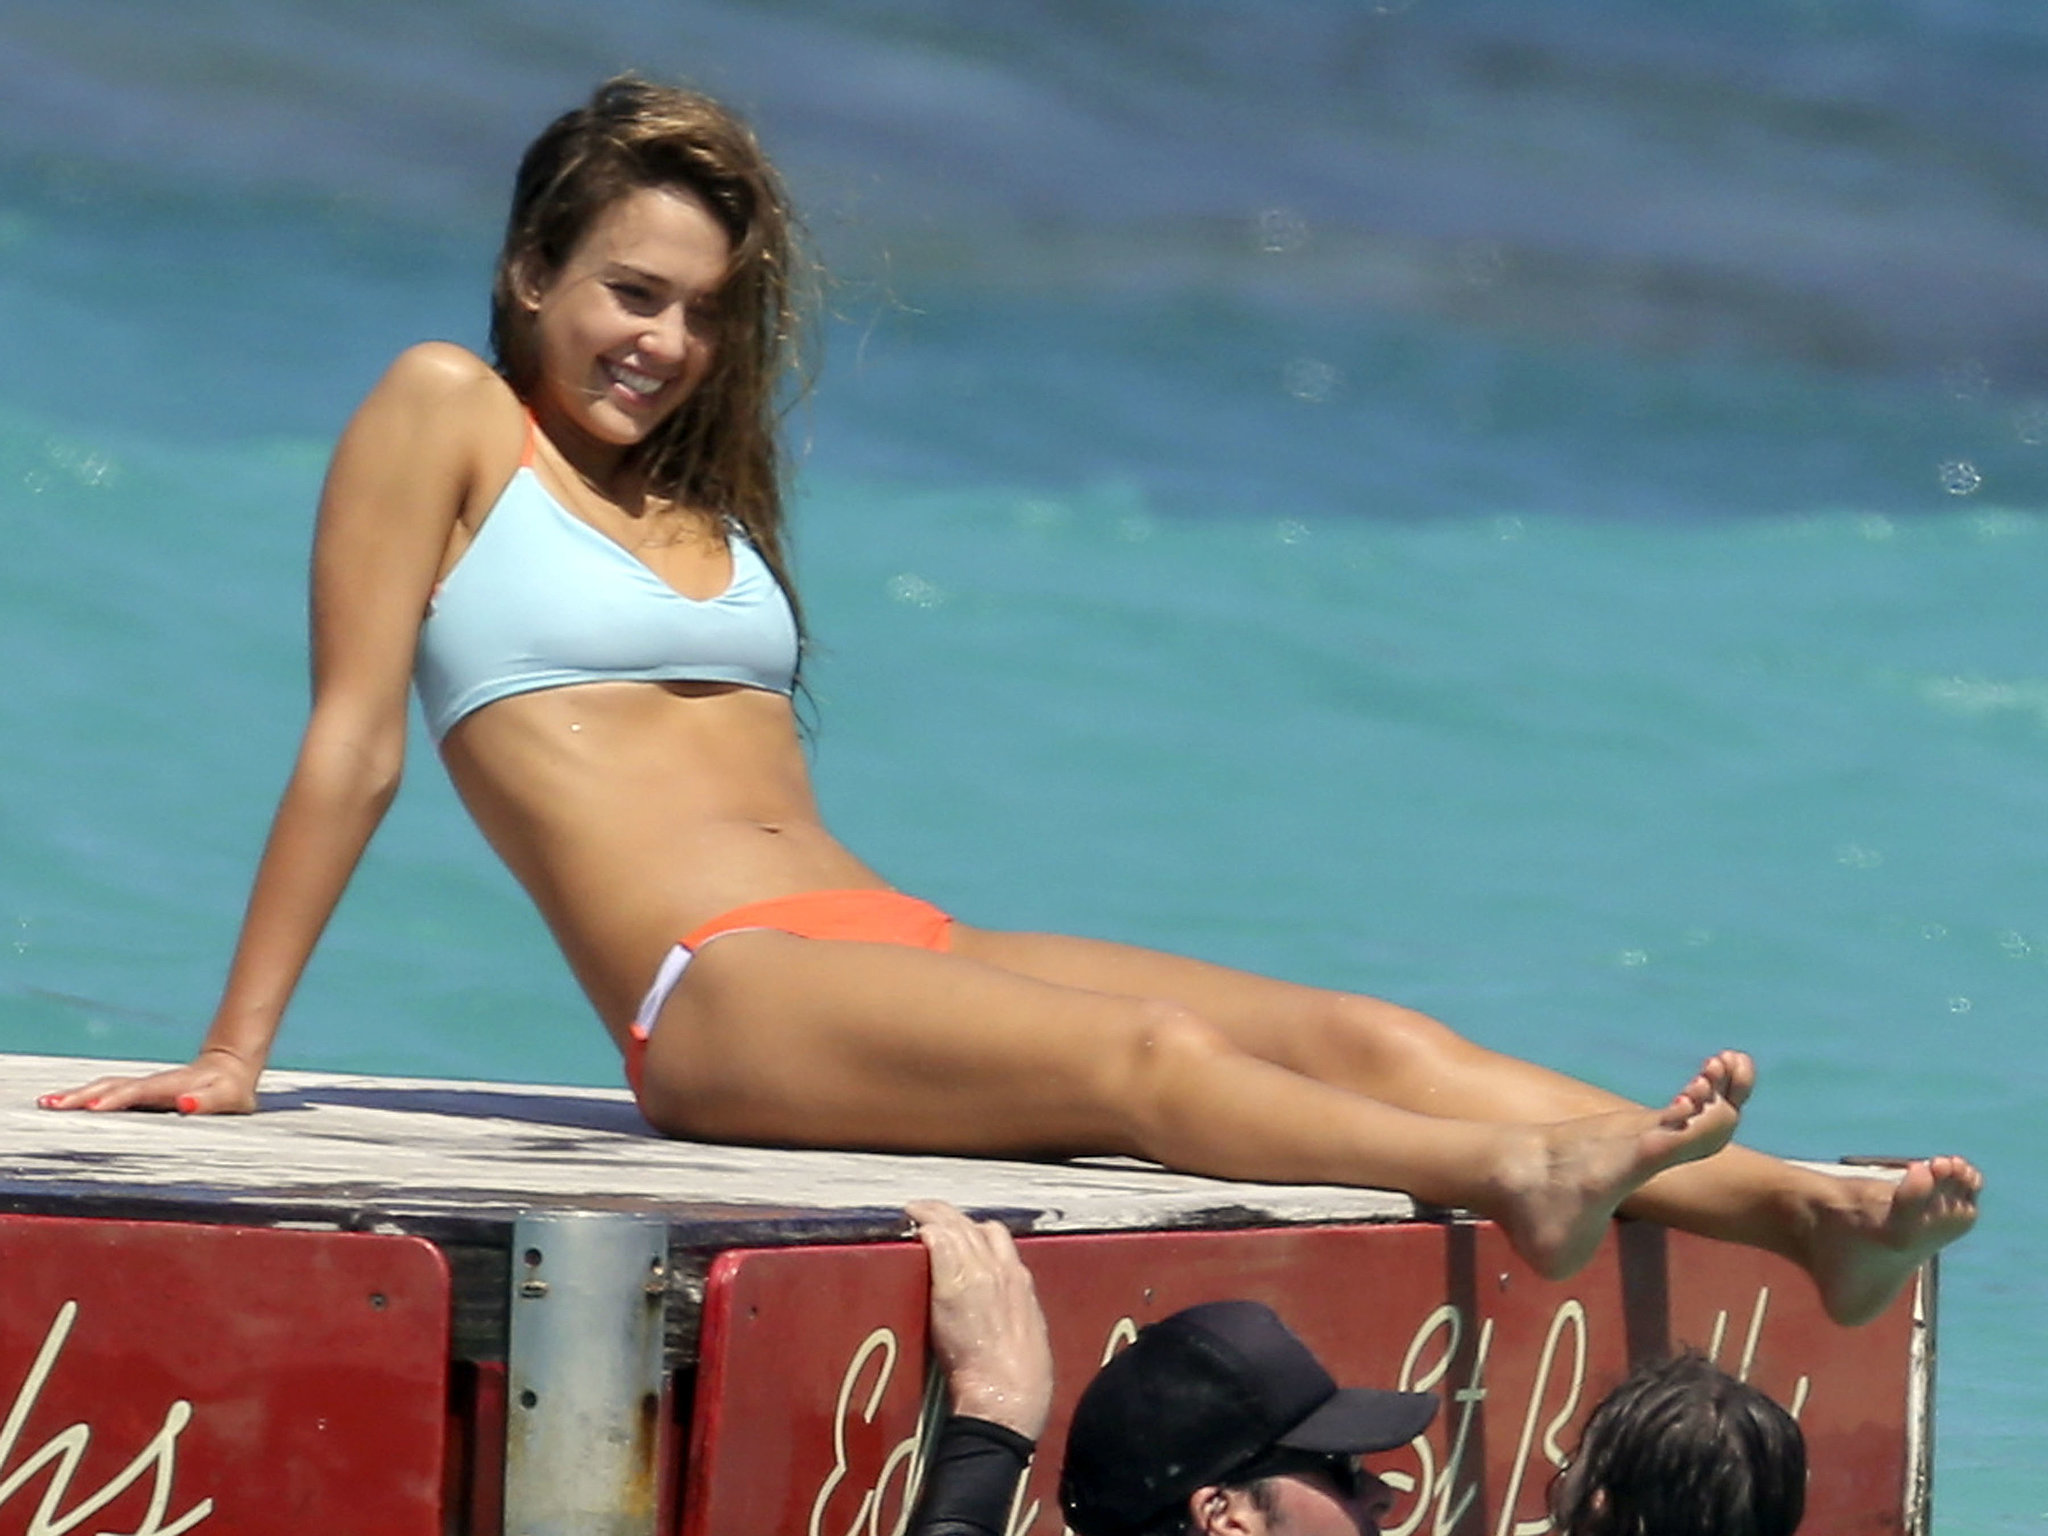 Jessica relaxed on a floating raft in St. Barts in April 2013.